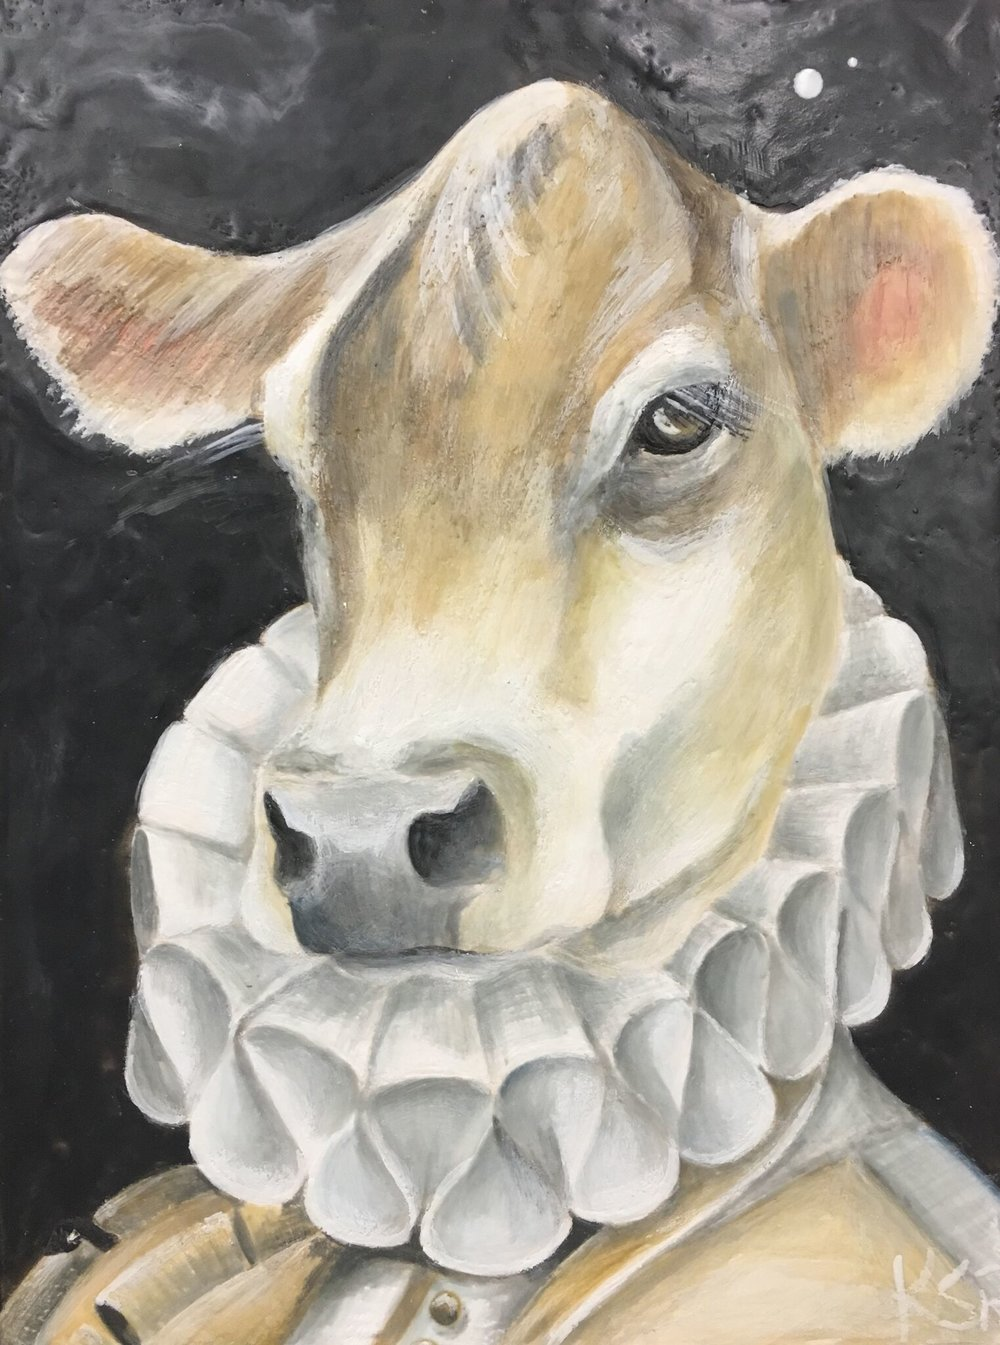 How Now Brown Cow 2017 12x16 Encaustic on Panel